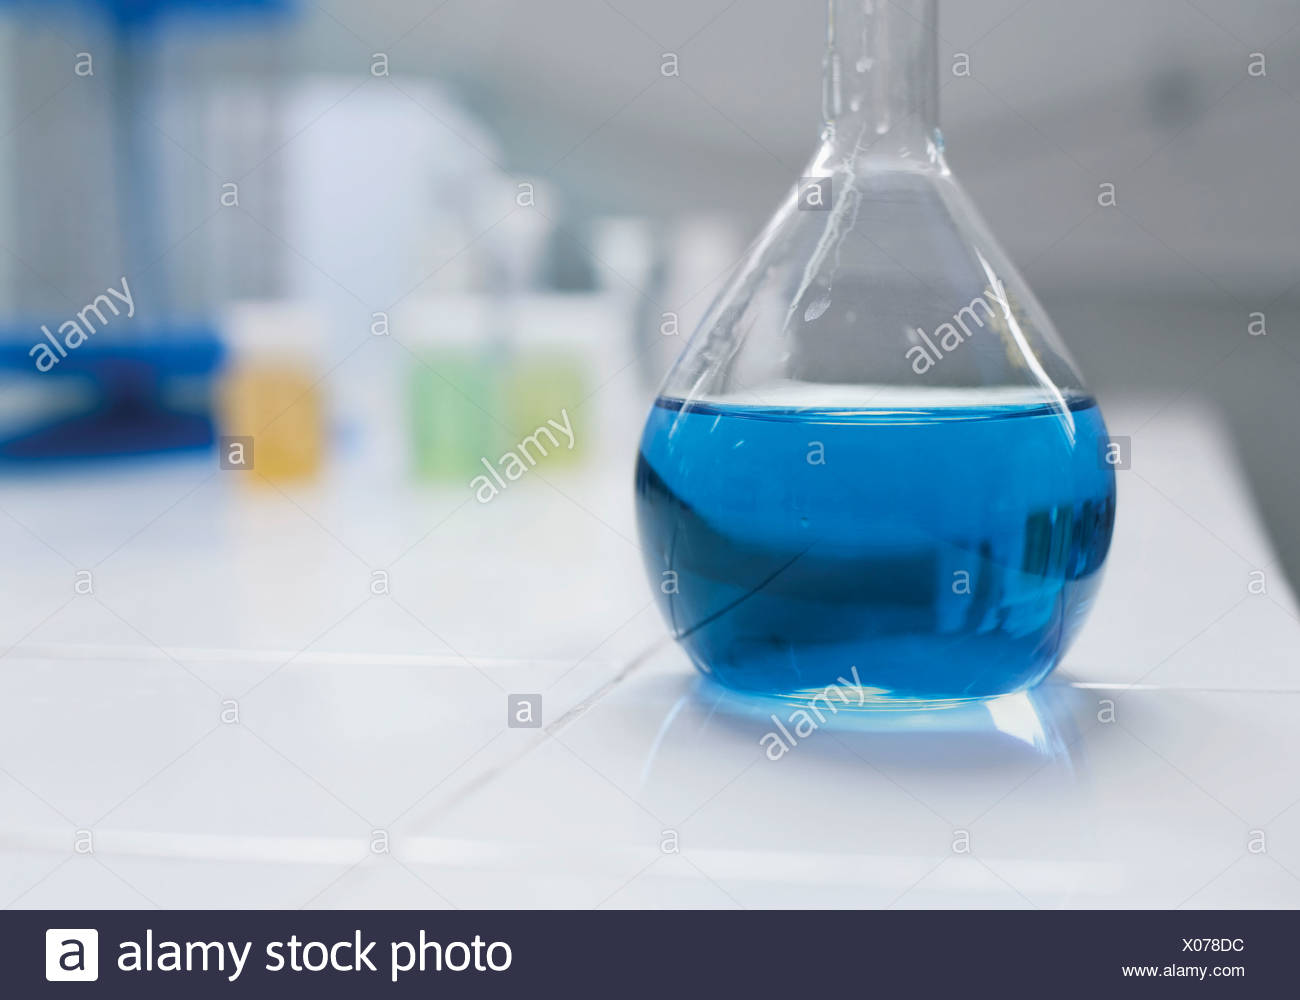 Glass flask with blue fluid, close up - Stock Image